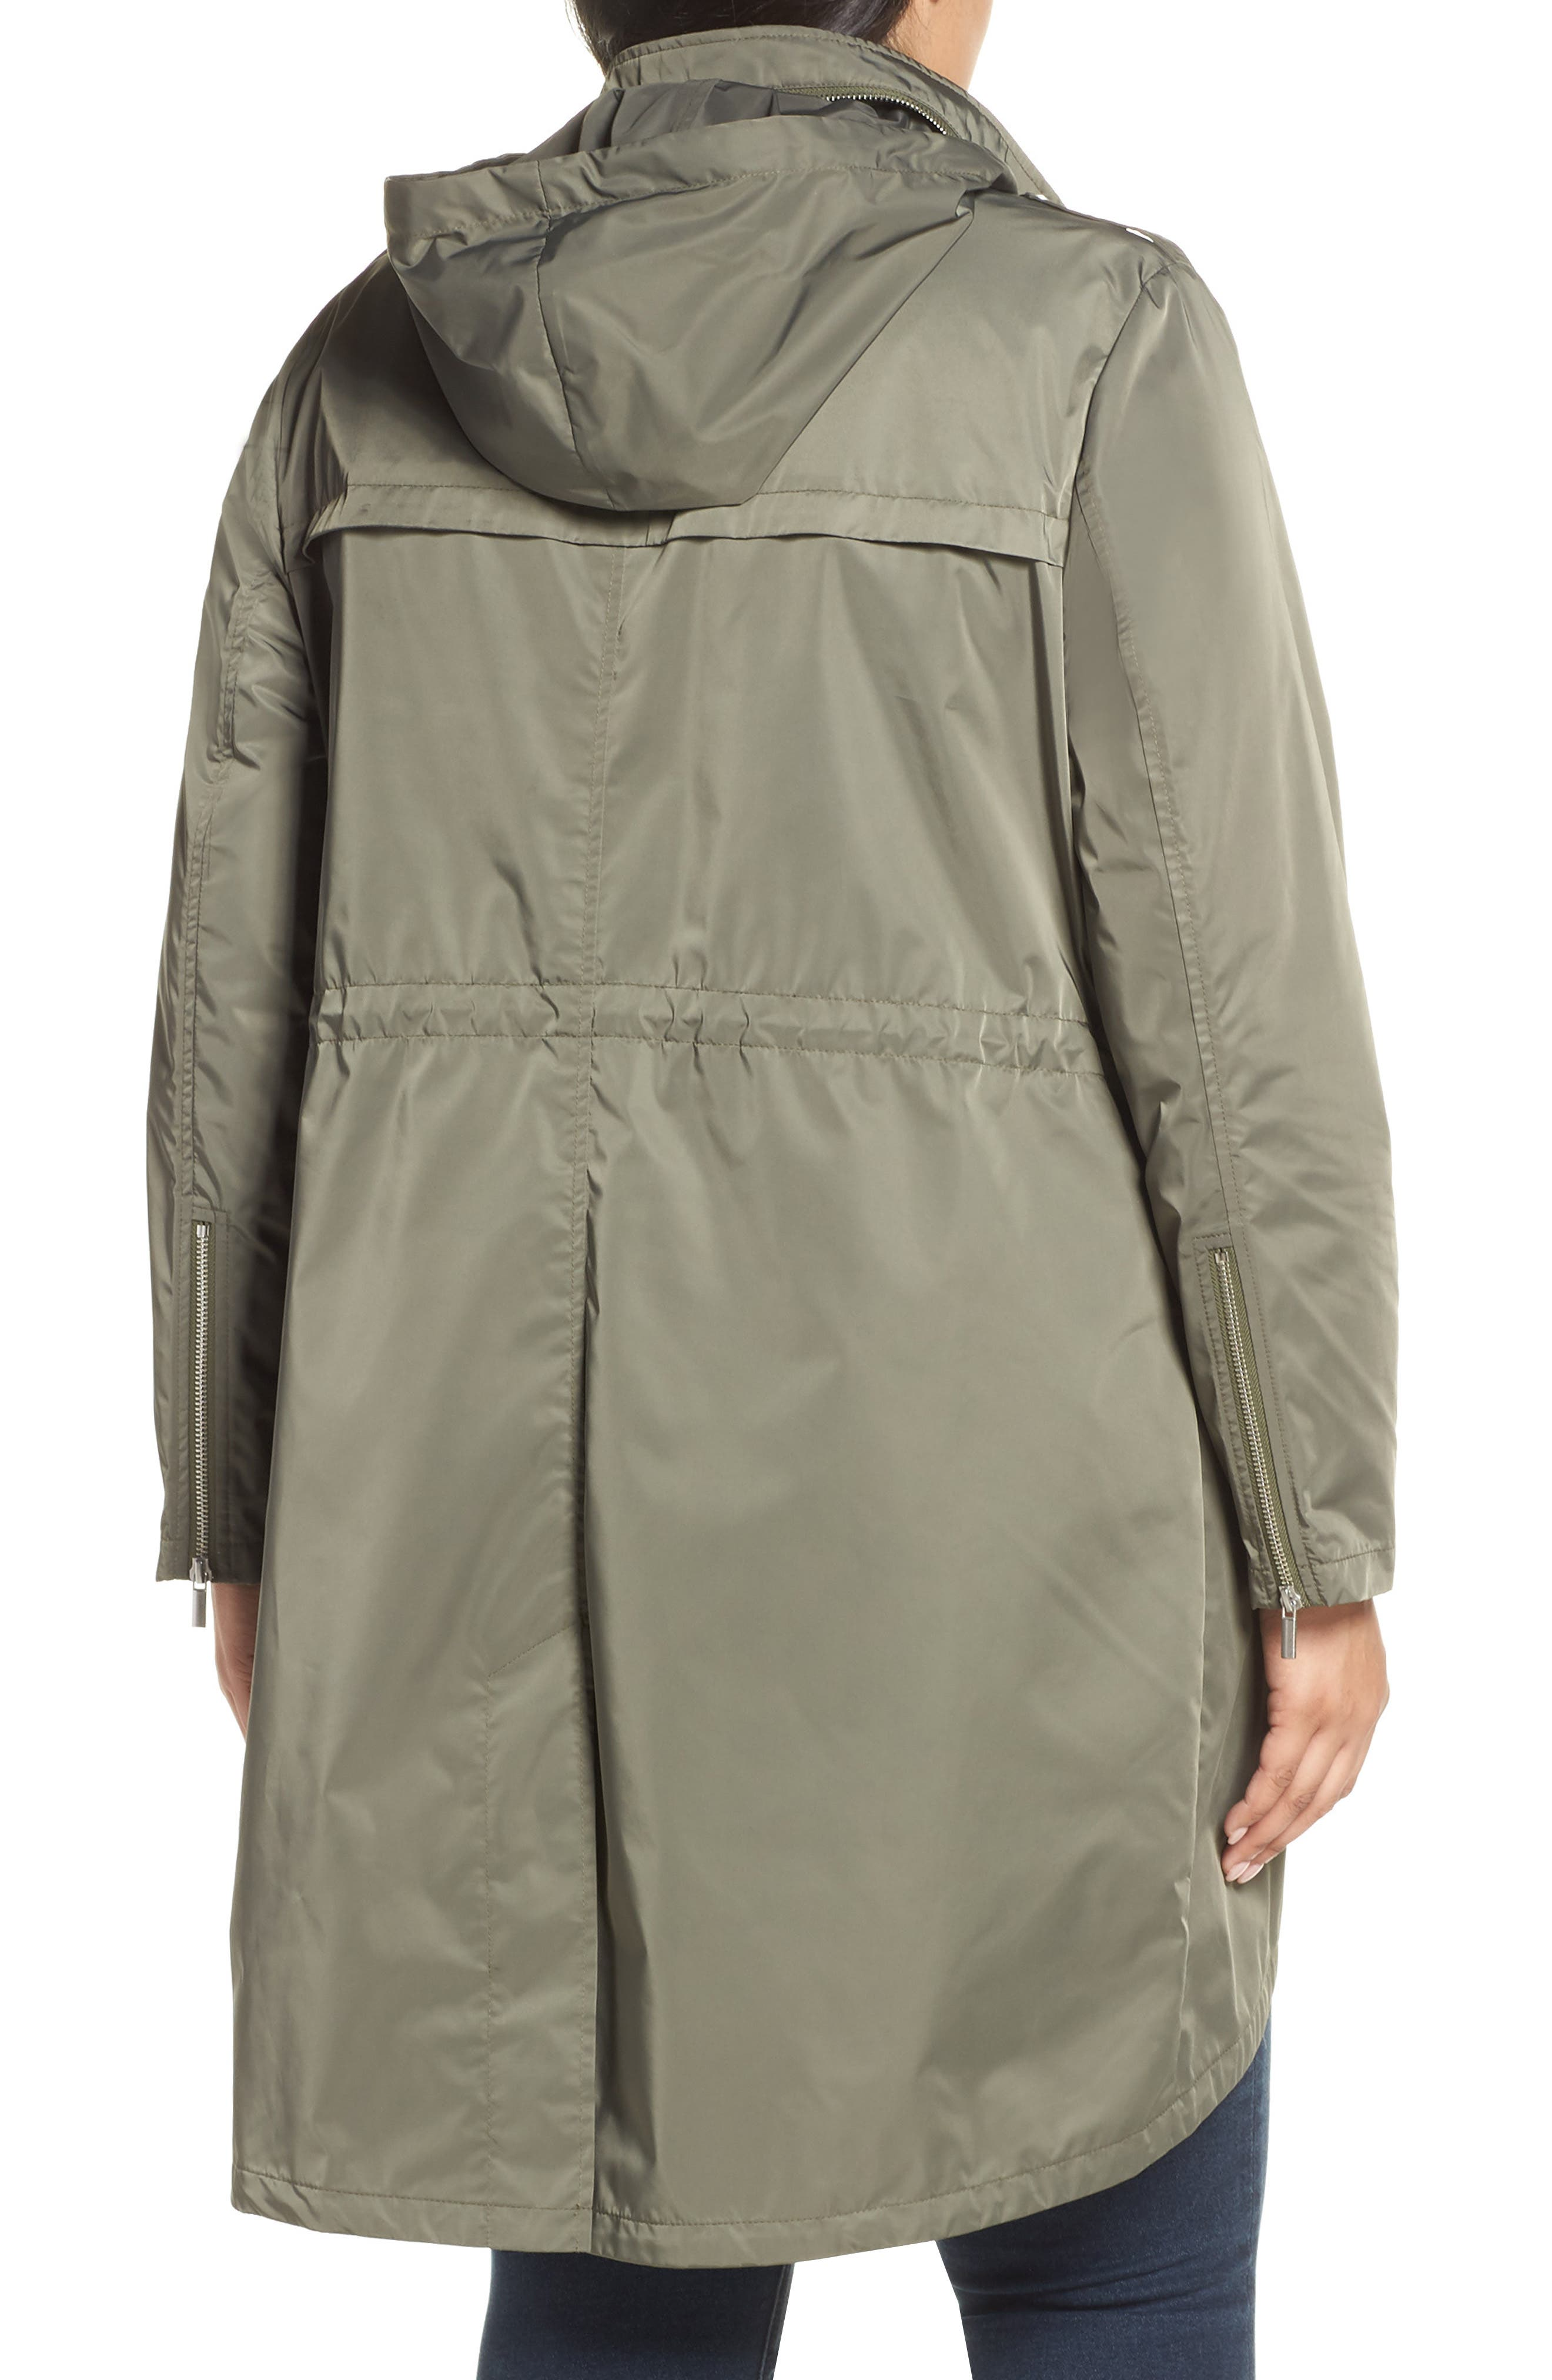 Badgley Mischka Dakota Raincoat,                             Alternate thumbnail 2, color,                             PALM